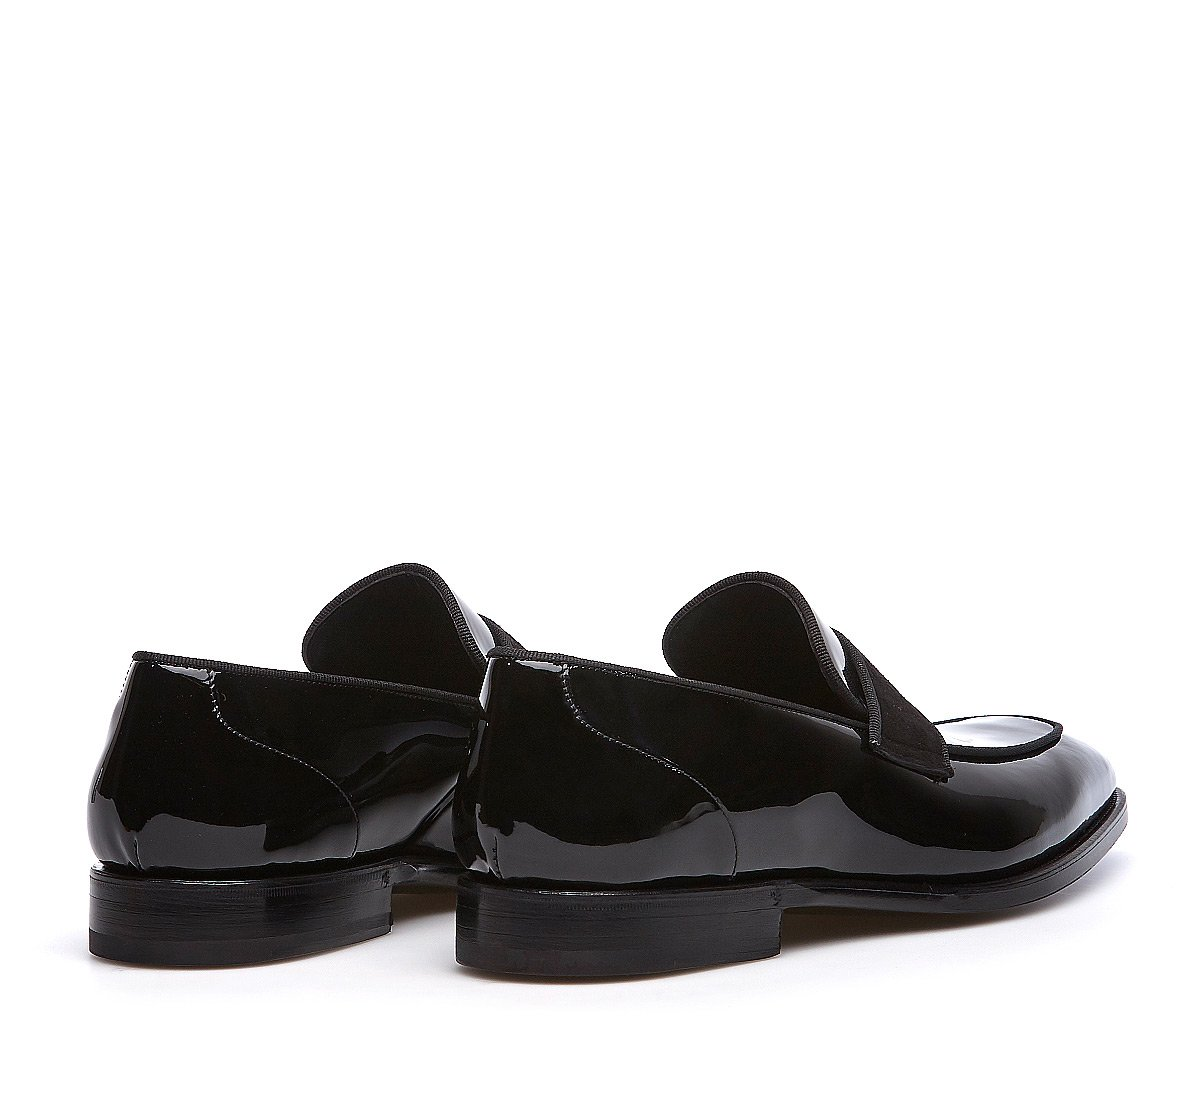 Classic Fabi Flex loafer in kidskin